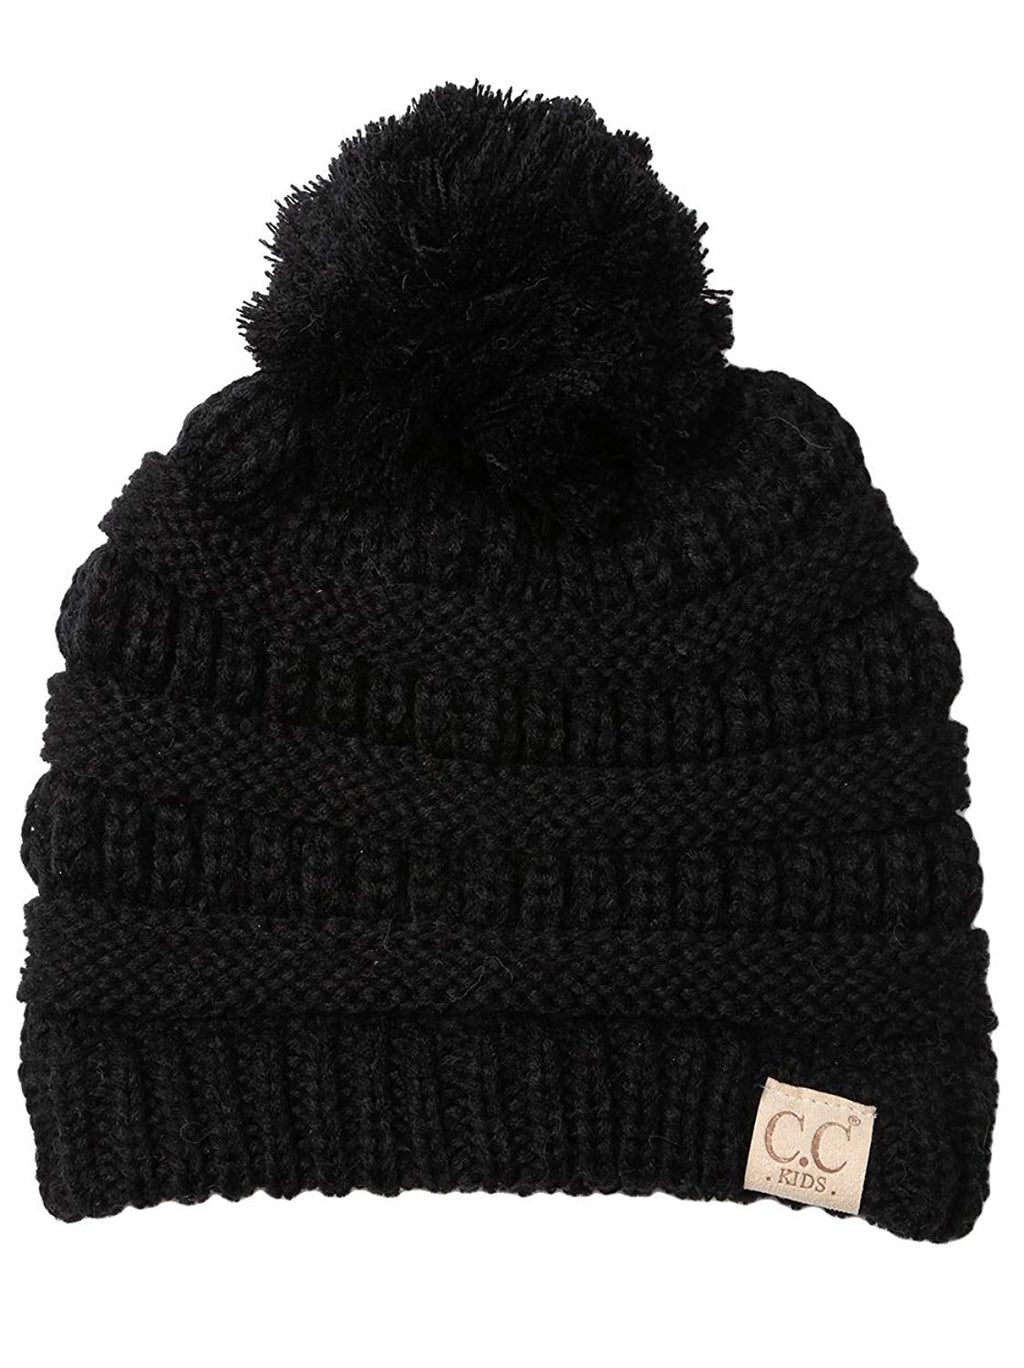 C.C. Kid's Cable Knit Winter Beanie W/ Pom - Solid Colors